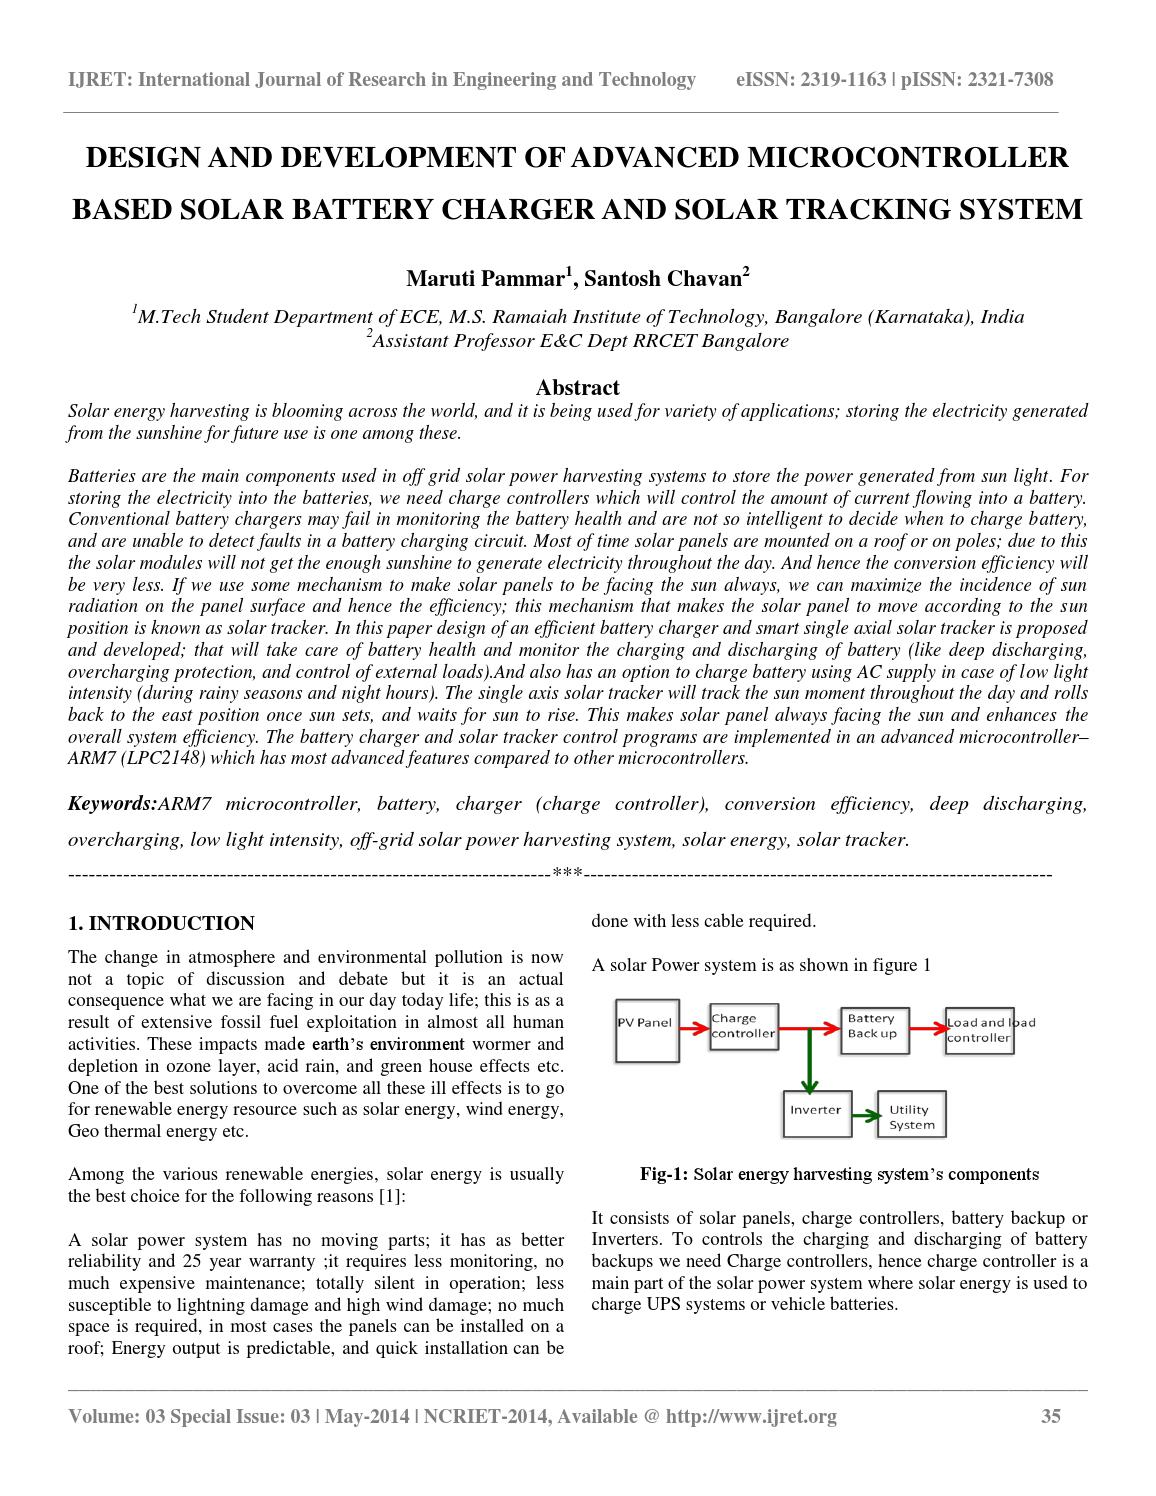 Design and development of advanced microcontroller based